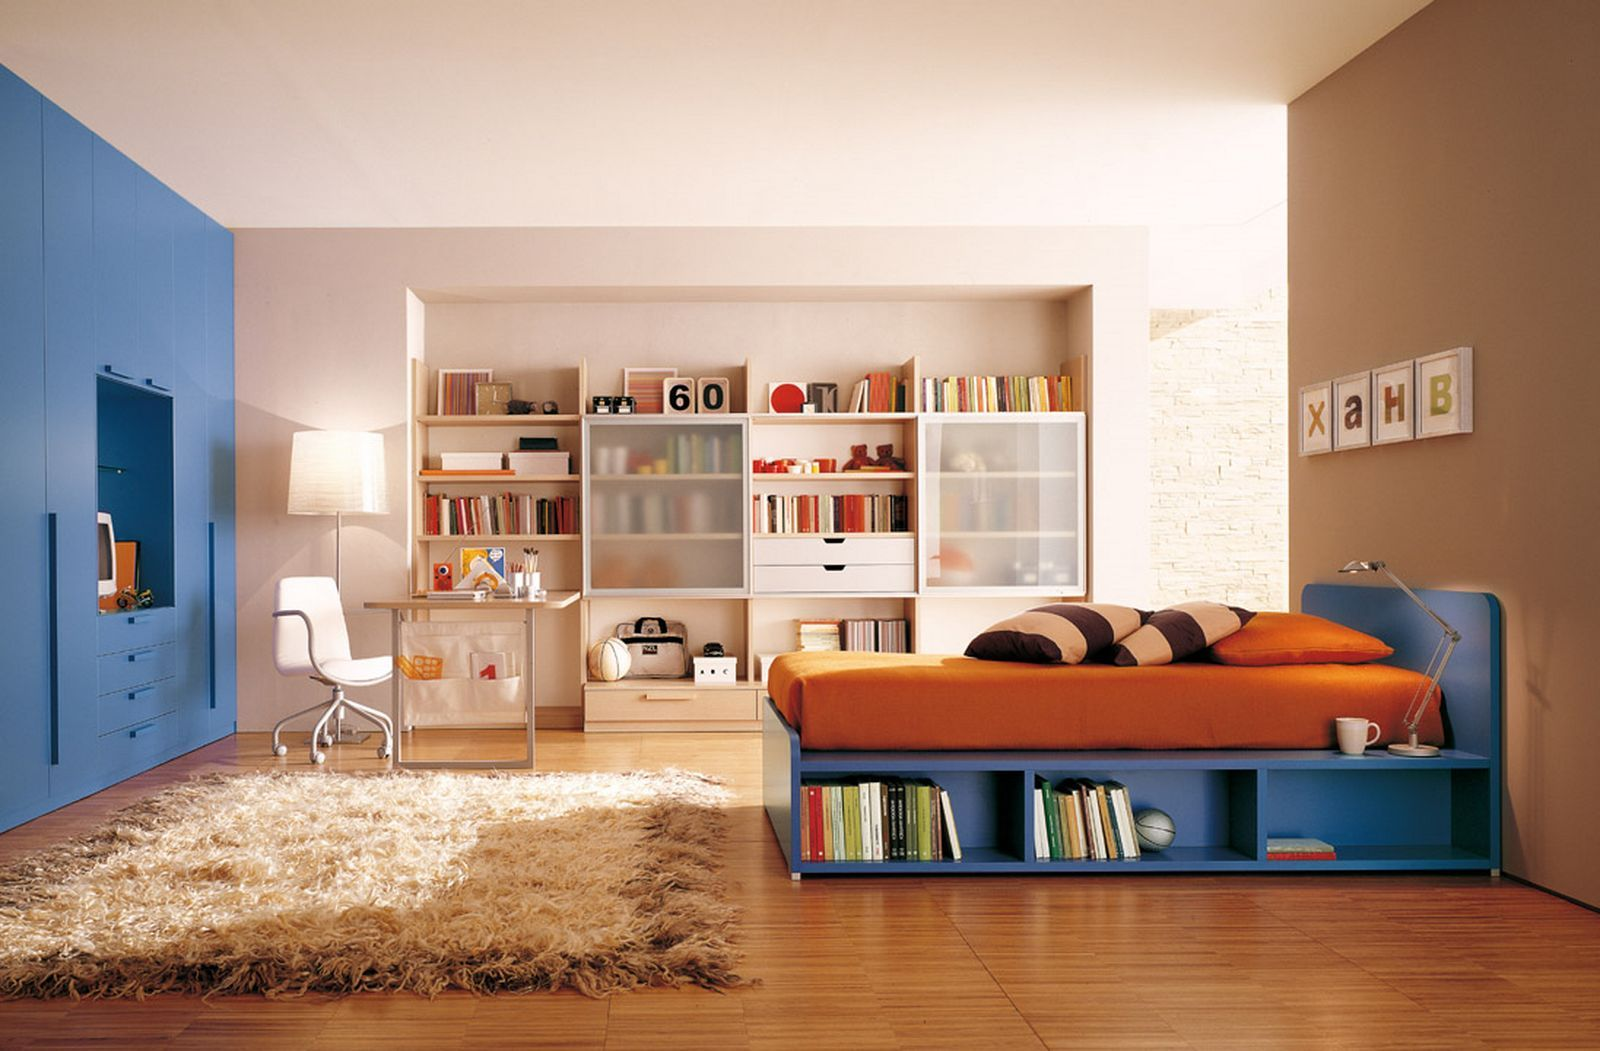 Details About Kids Bedroom Incredible Design Modern Kids Room - Kids bedroom